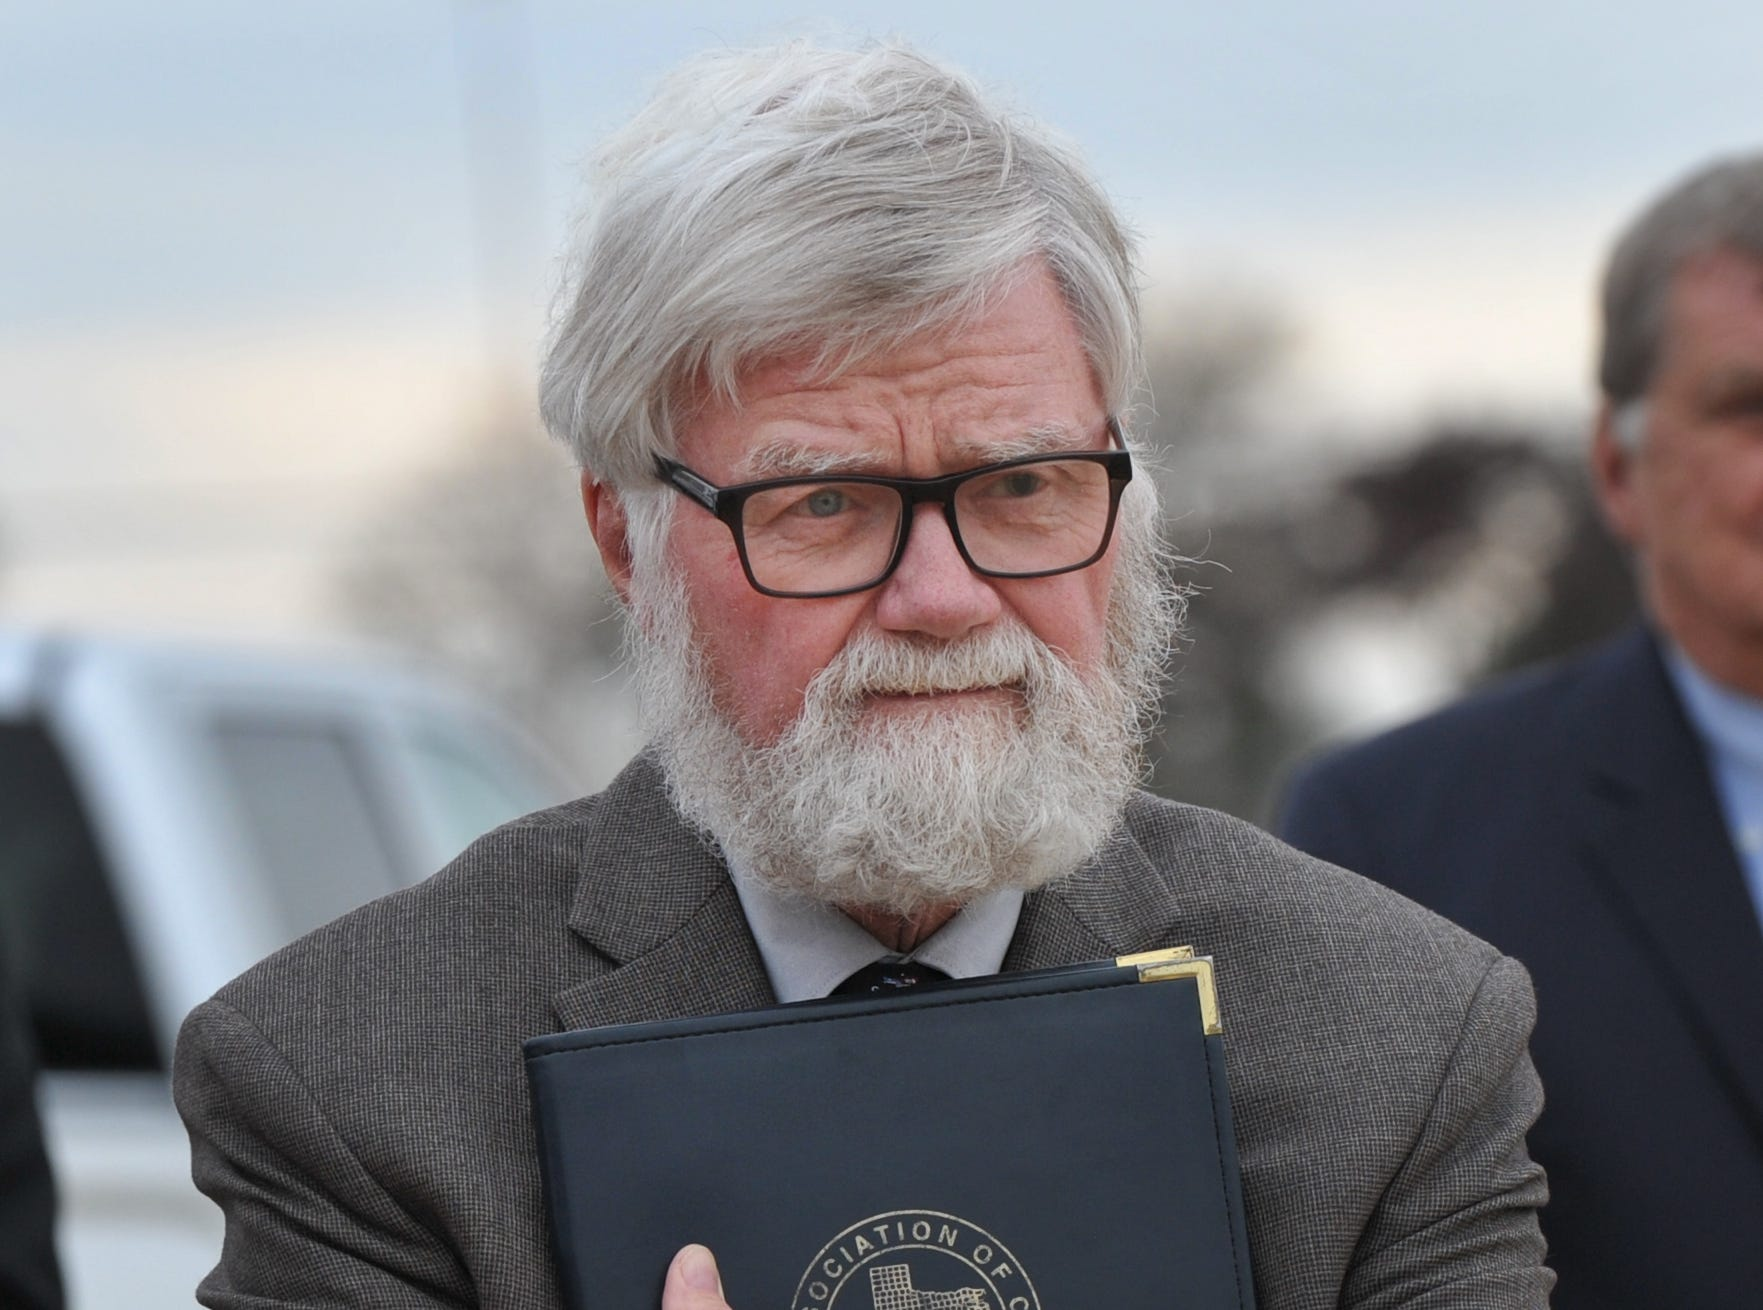 Wichita County Judge, Woody Gossom listened as county dignitaries spoke during a groundbreaking ceremony held for the law enforcement Tuesday afternoon.